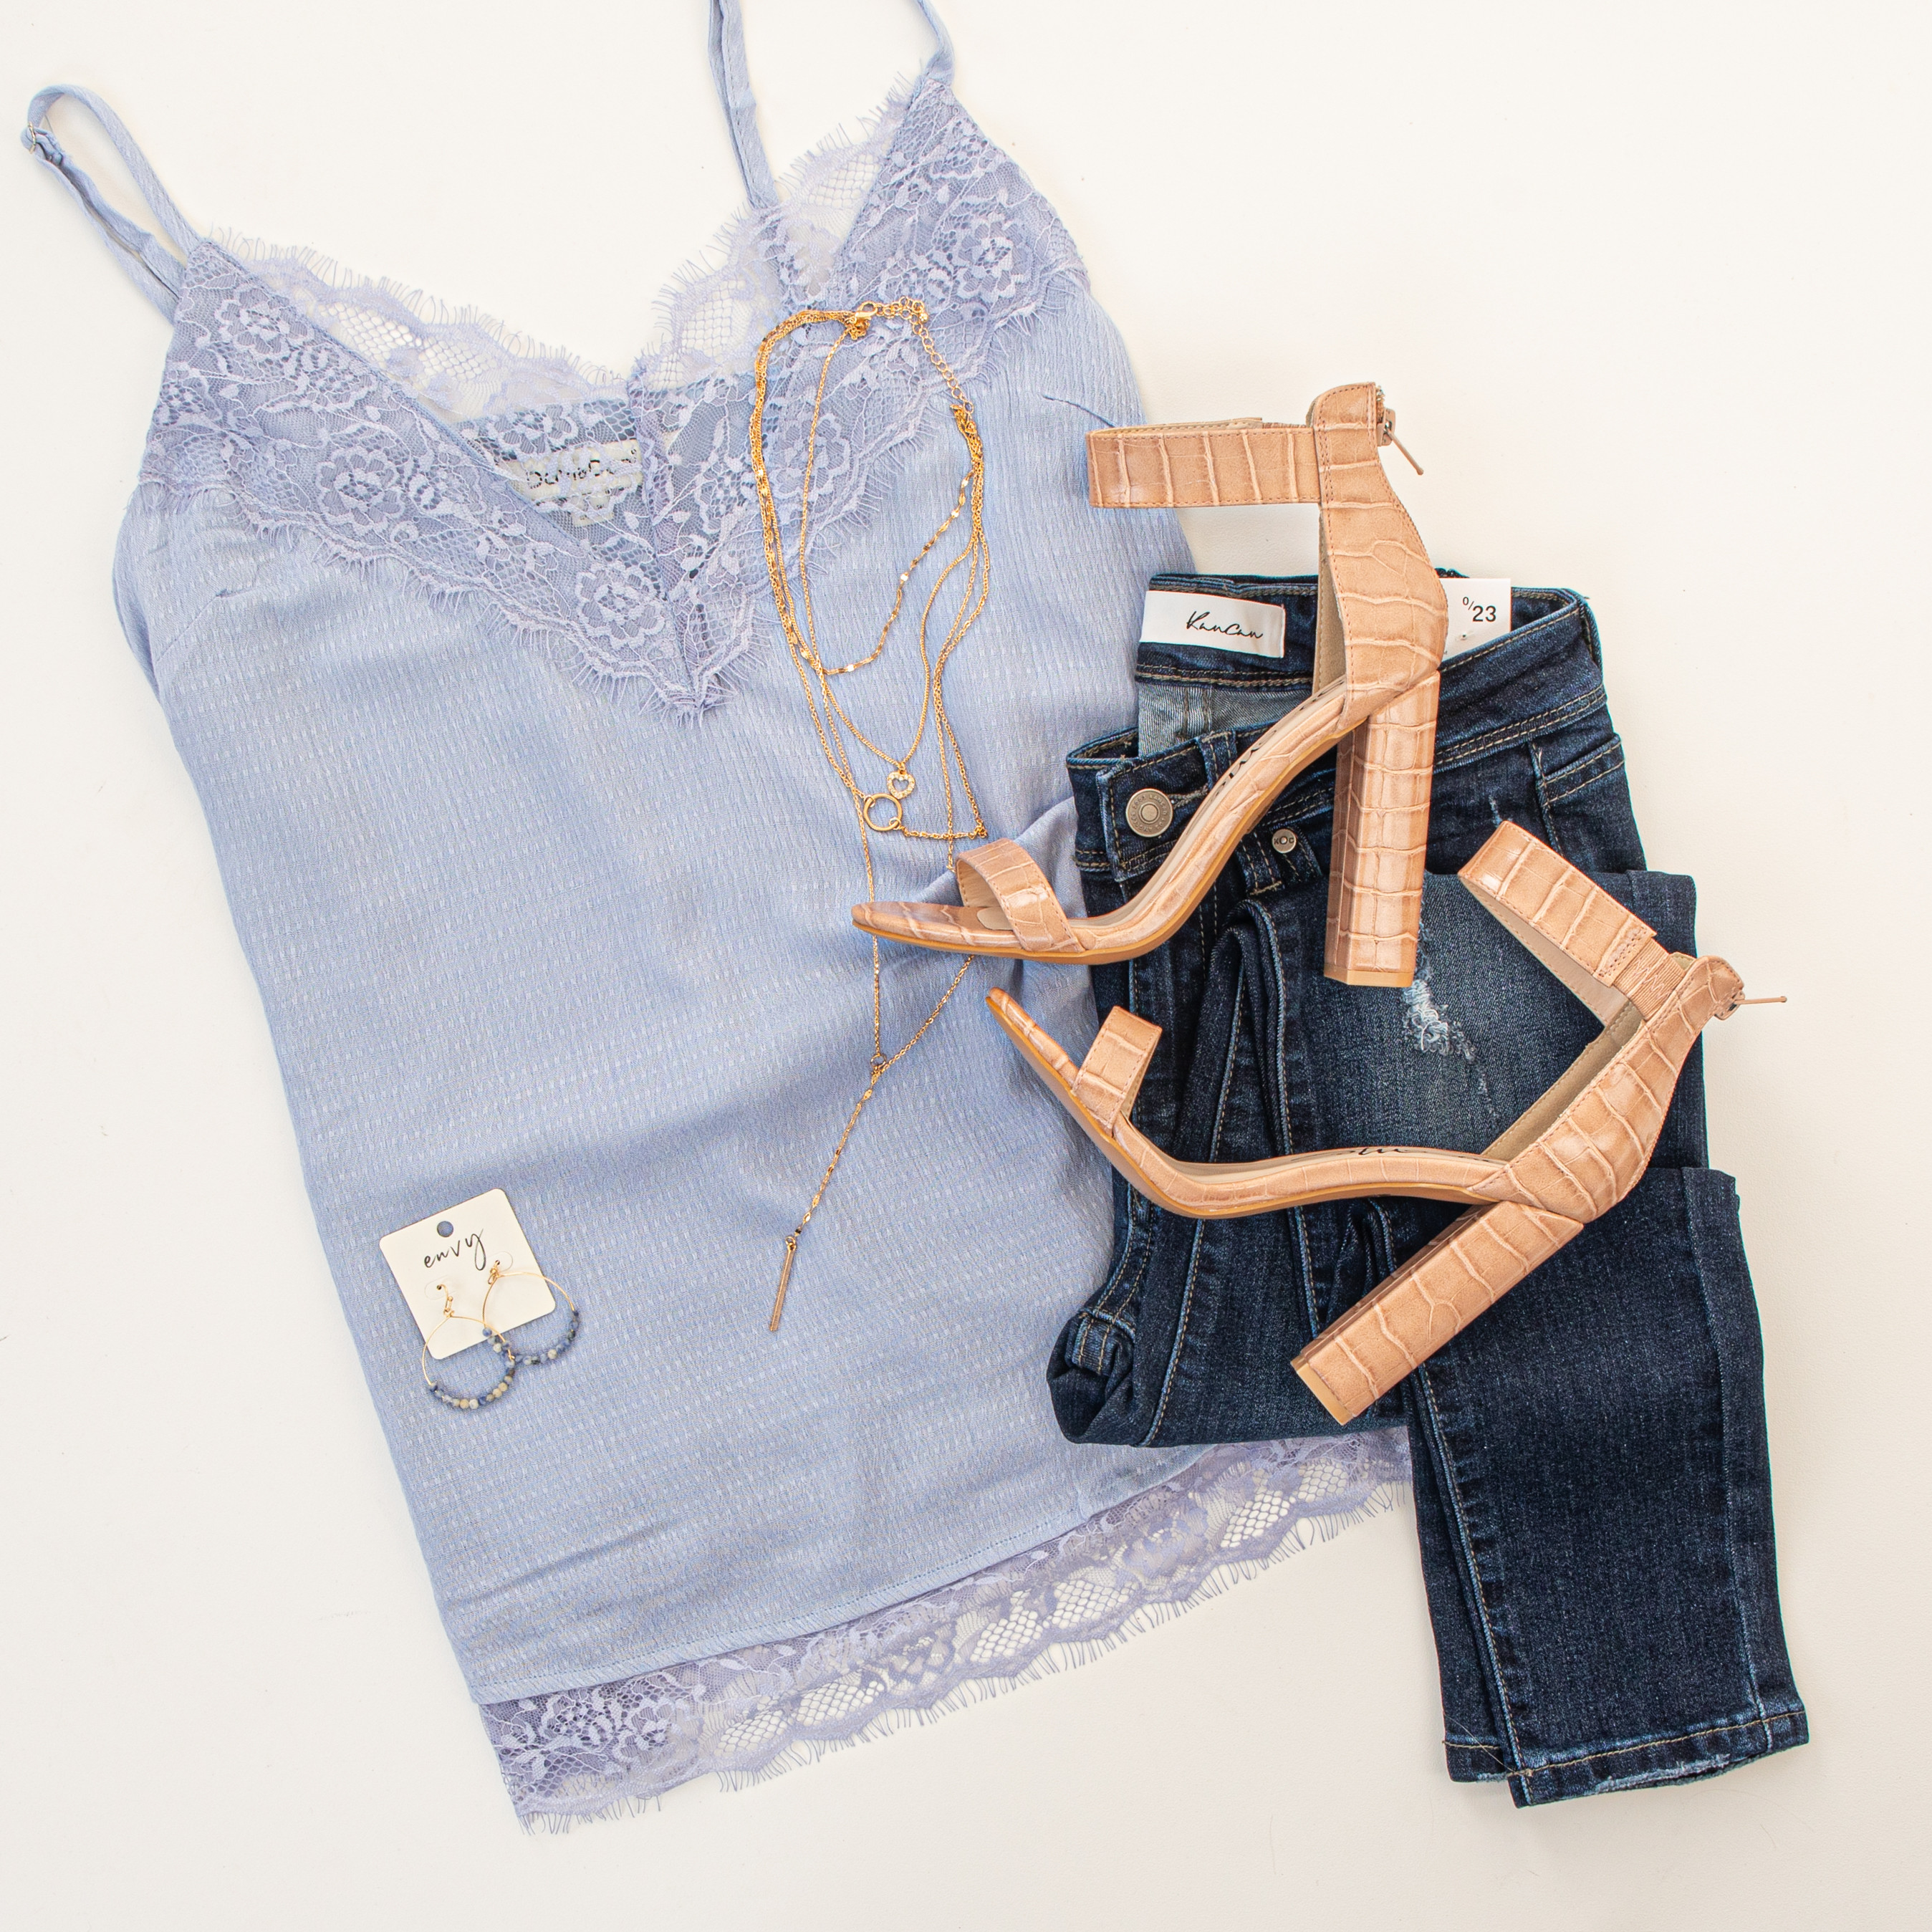 Powder Blue Sleeveless Tank Top with Lace Trim Details